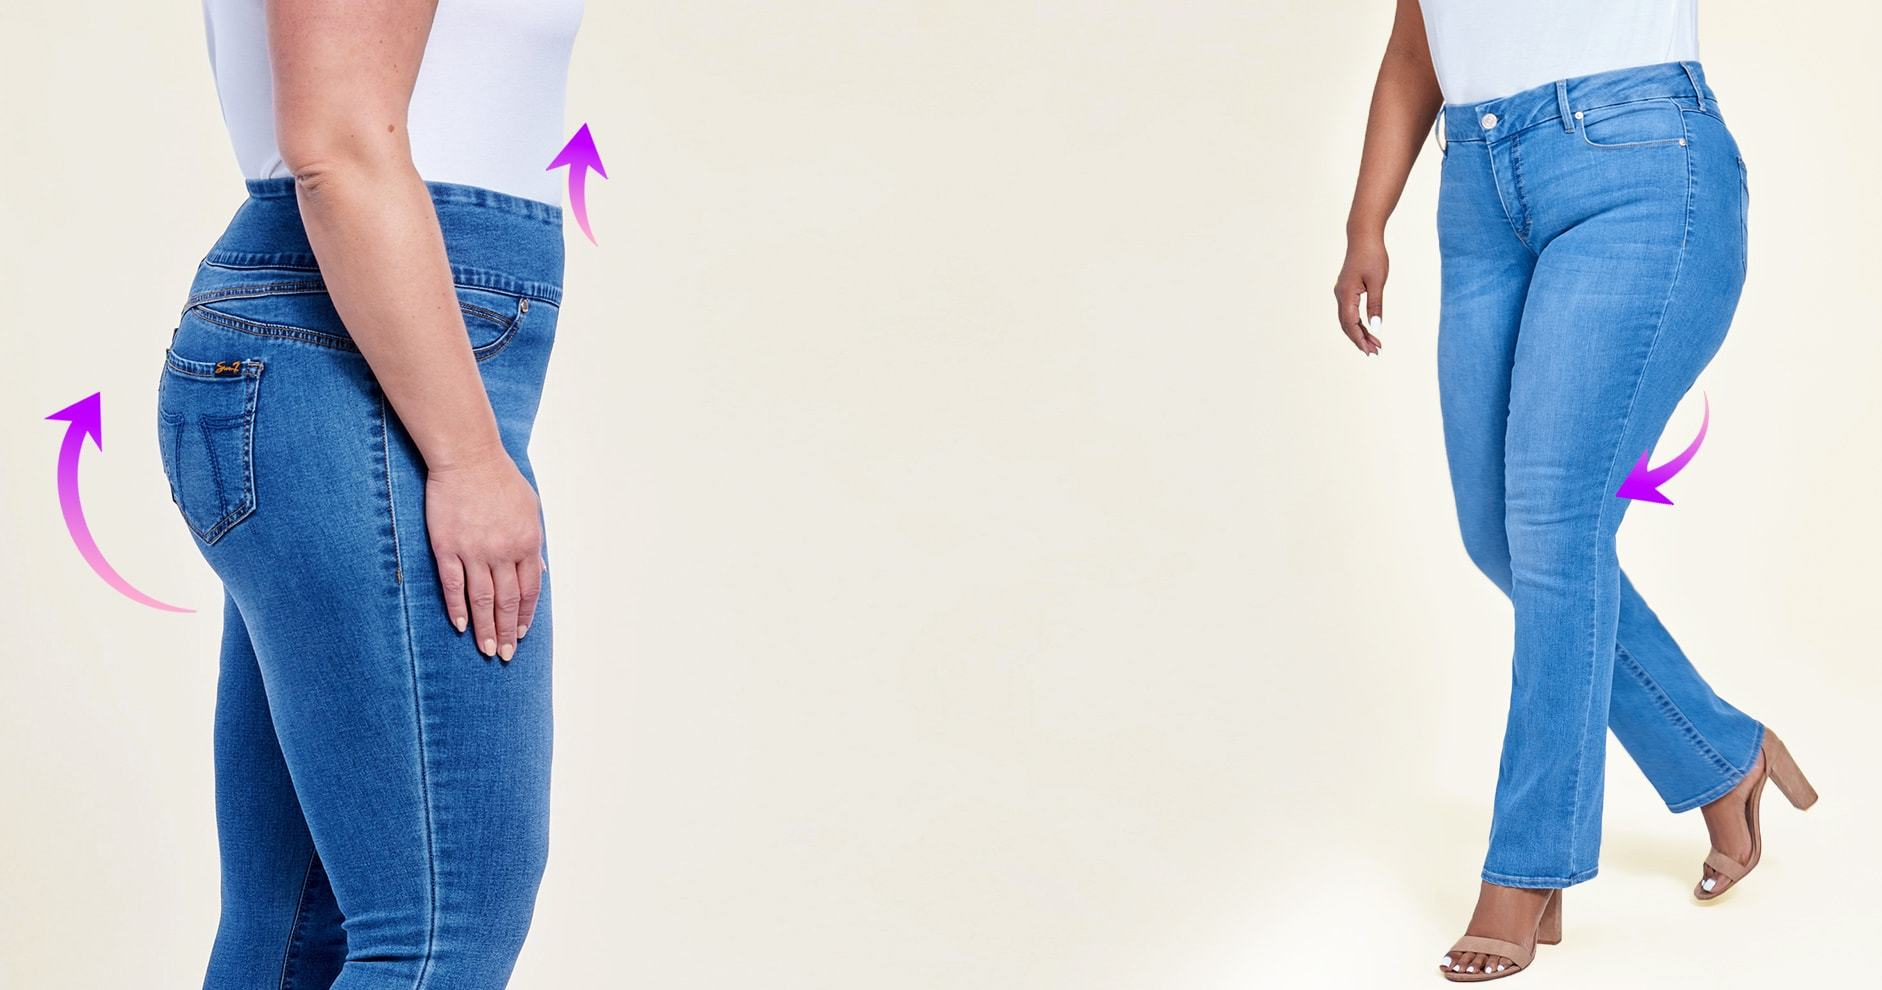 Solution Fit. Body-shaping jeans that lift and sculpt in all the right places